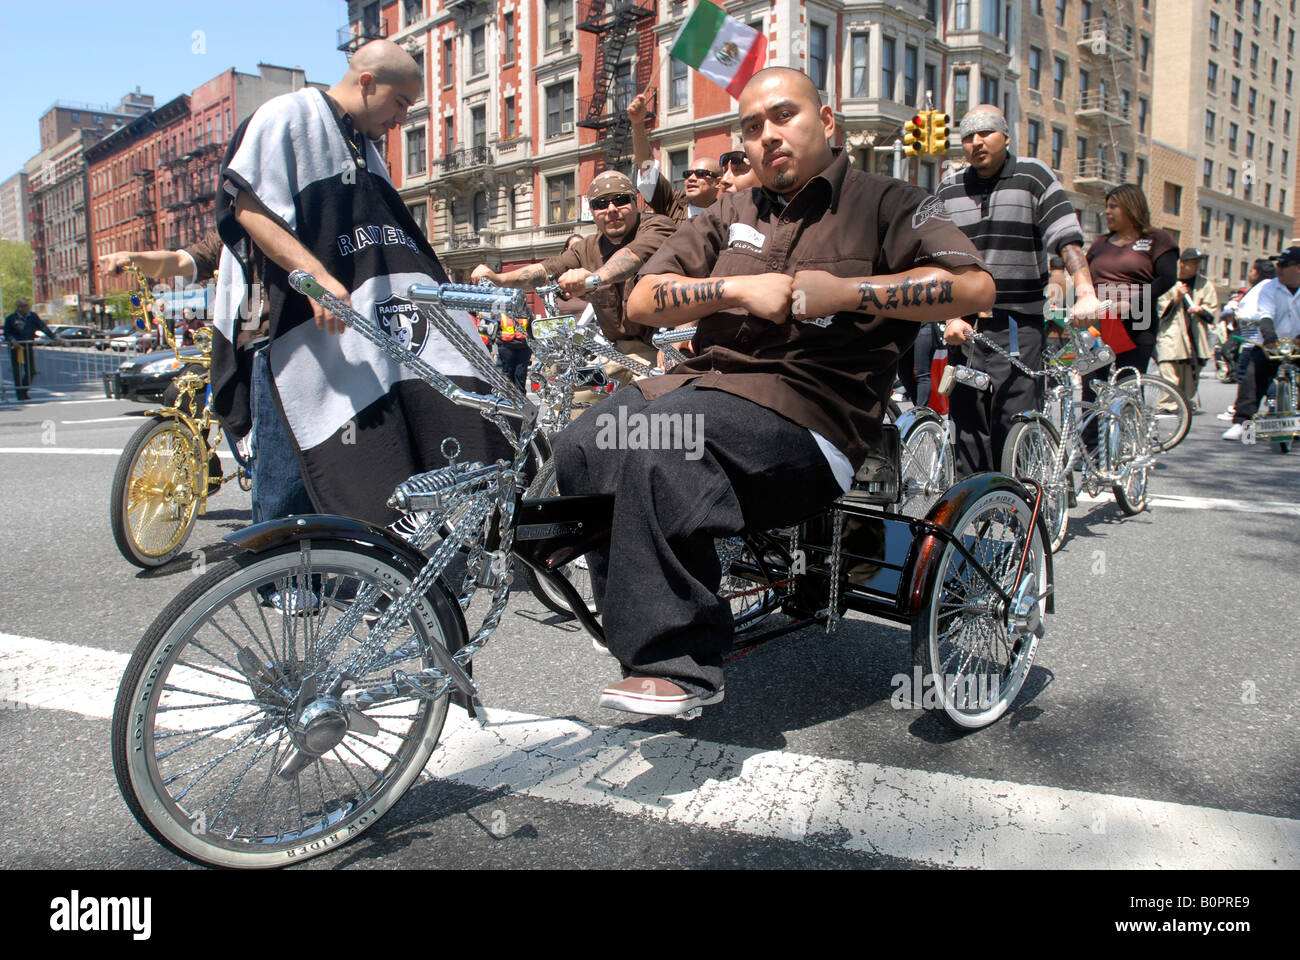 Members of the Firme Ridaz a novelty bicycle club ride in the Cinco de Mayo Parade in New York - Stock Image